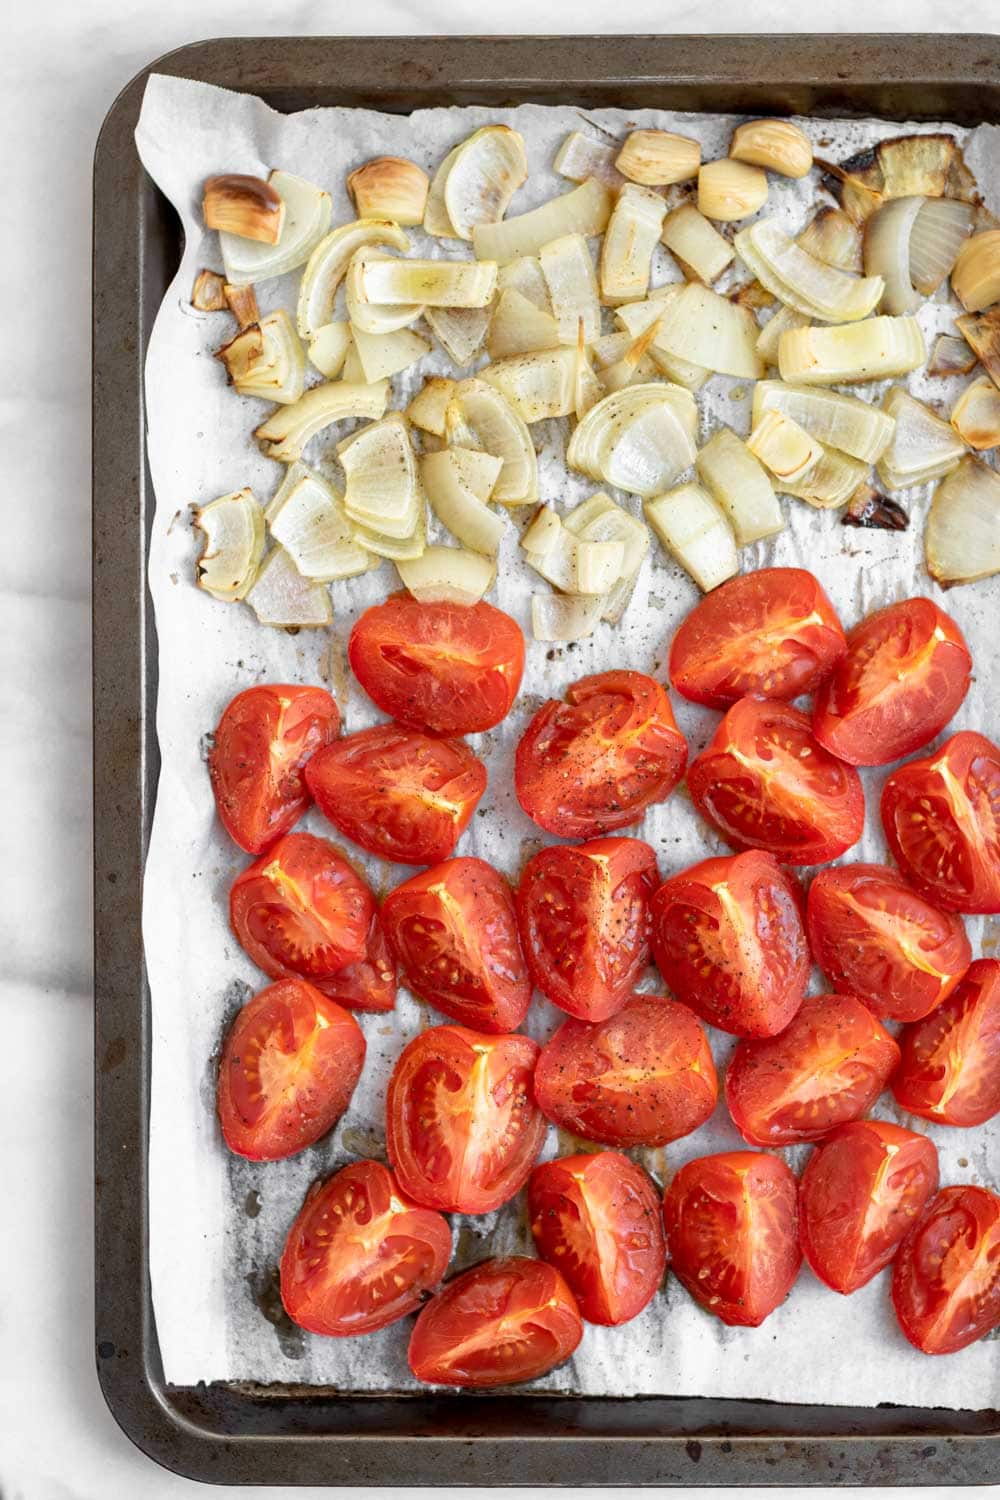 Roasted tomatoes and onion on a baking sheet.